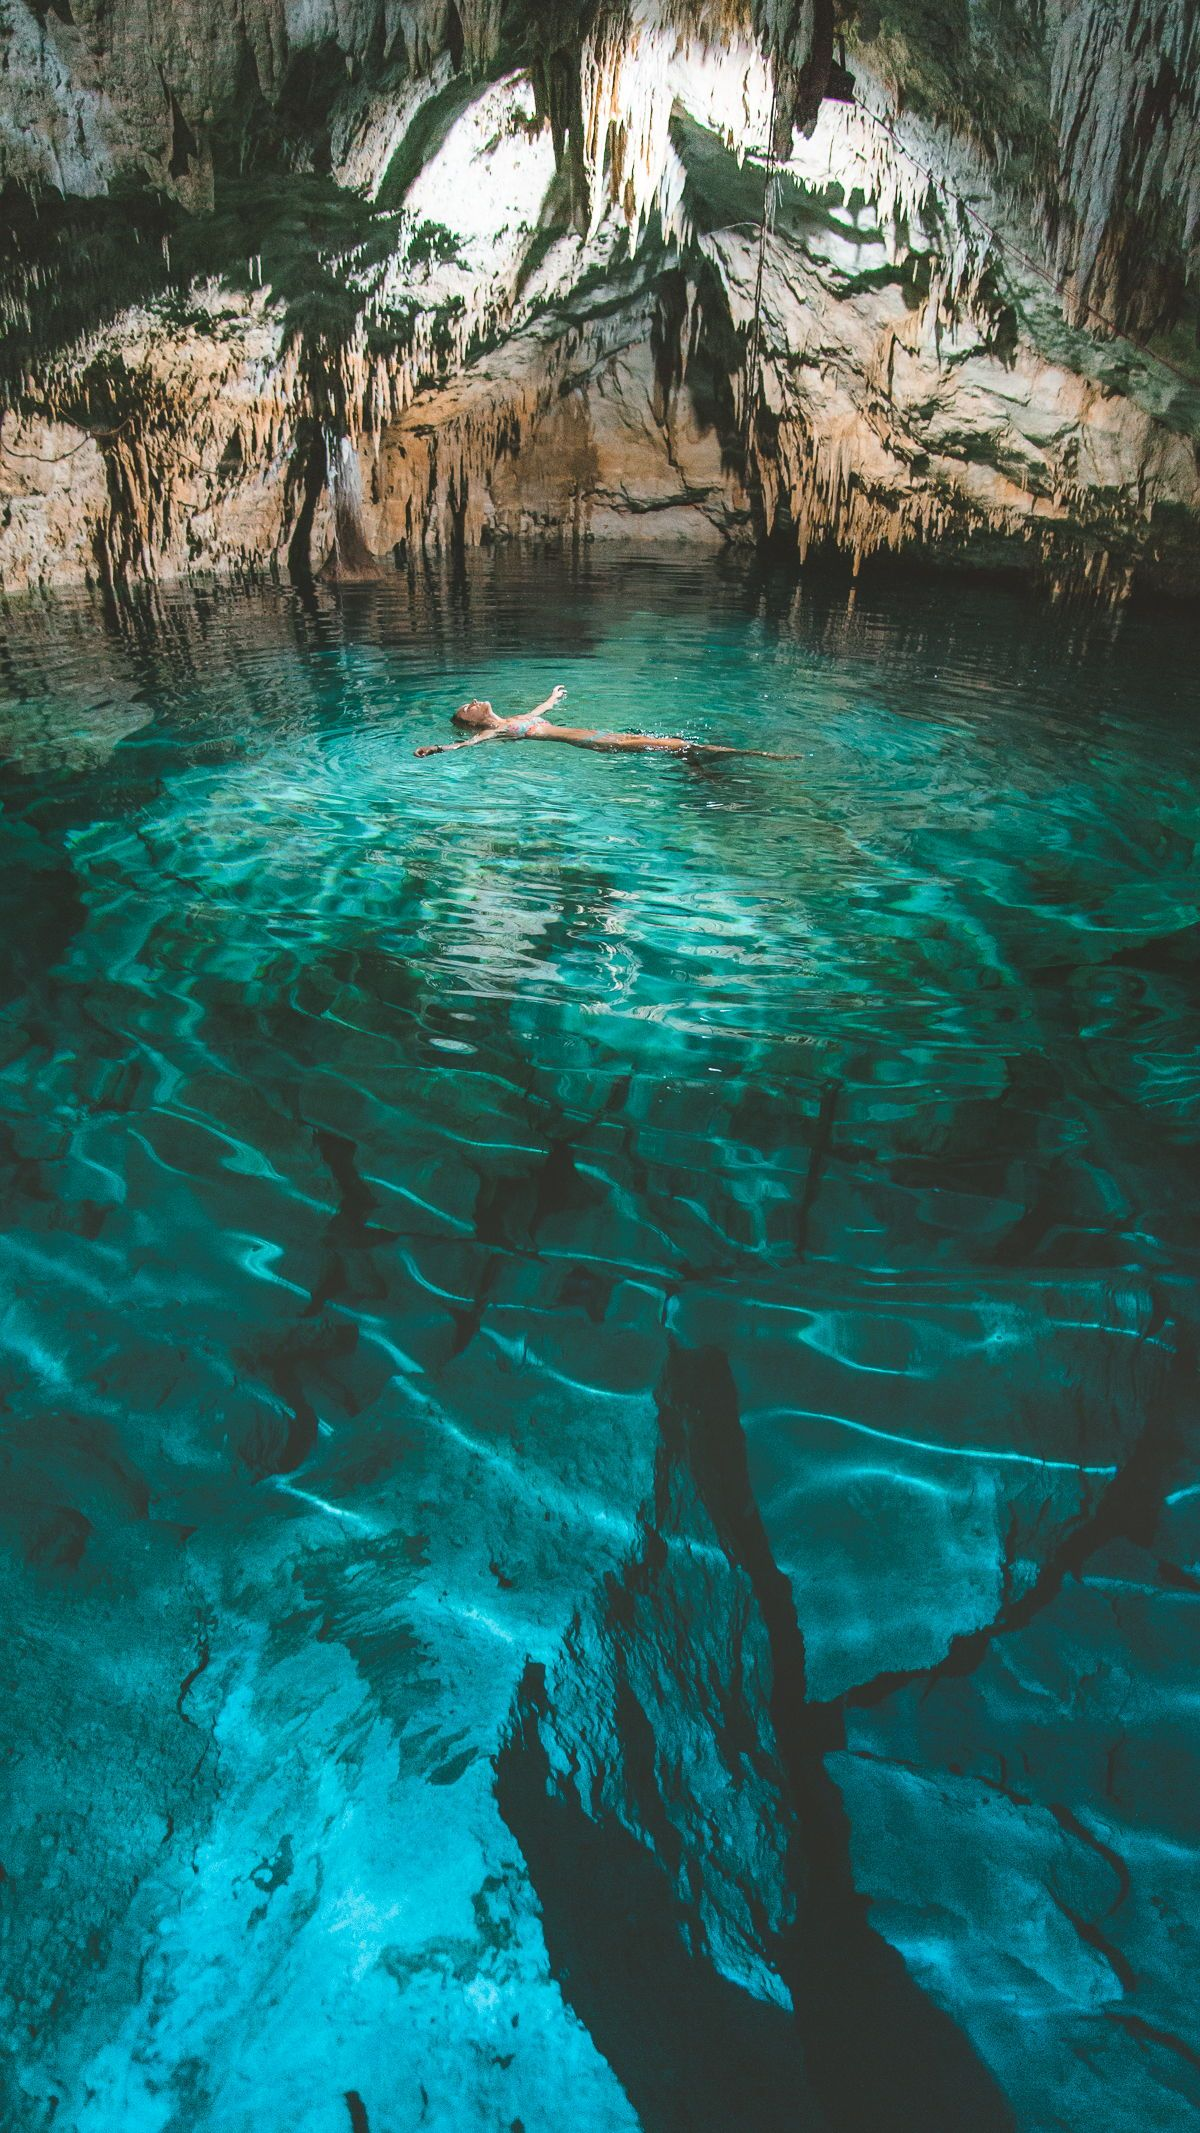 10 Best Cenotes To Visit In Yucatan Peninsula, Mexico #traveldestinations